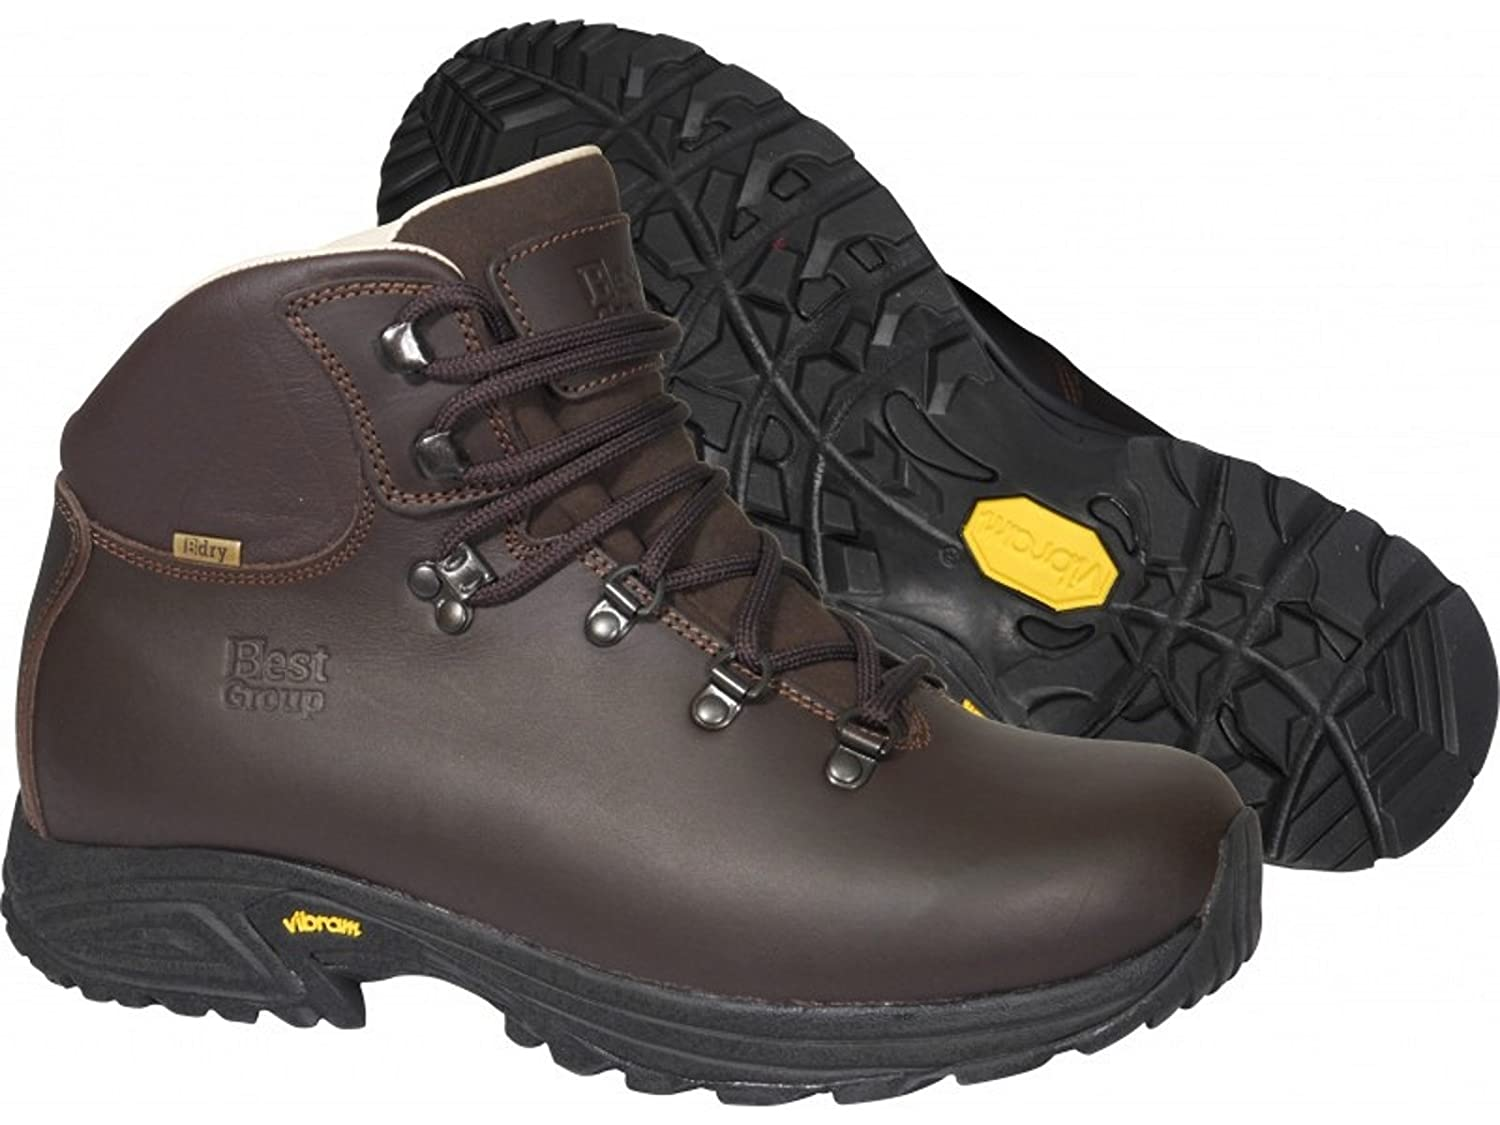 c910e798225 Best Group Storm Mens Womens Ulta Light Walking Hiking Leather Boots   Amazon.co.uk  Sports   Outdoors